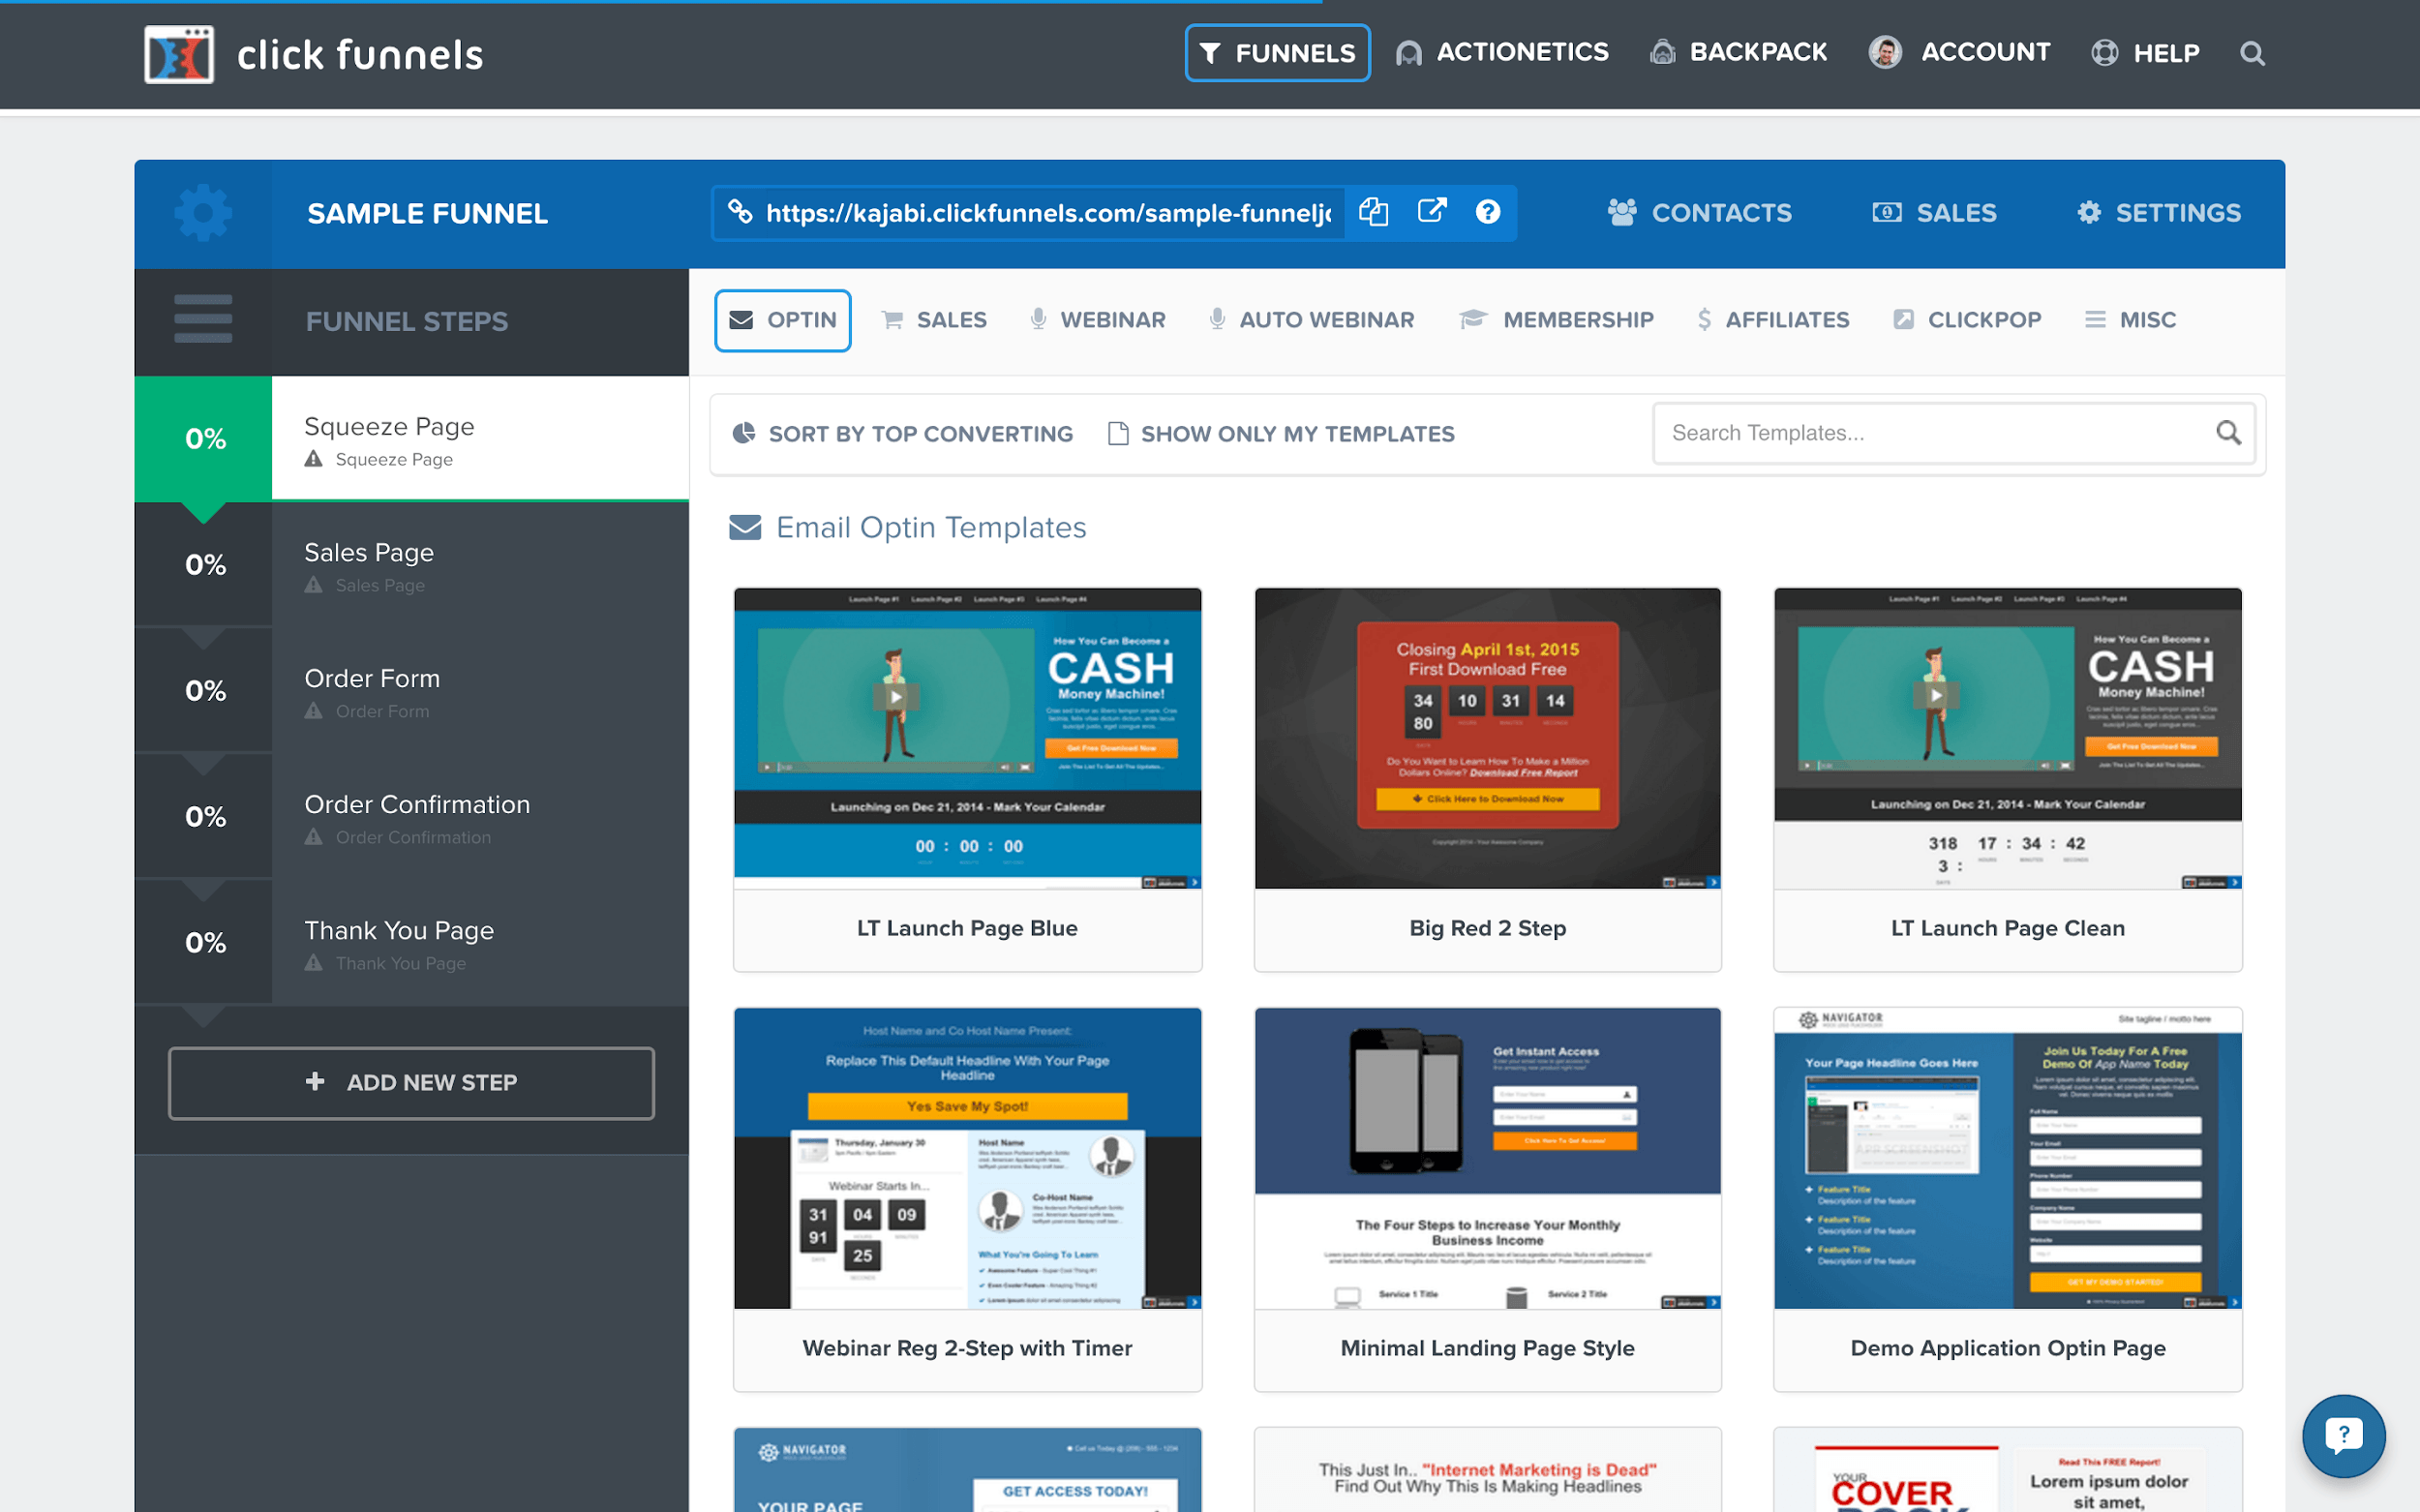 How To Setup Courses On Clickfunnels